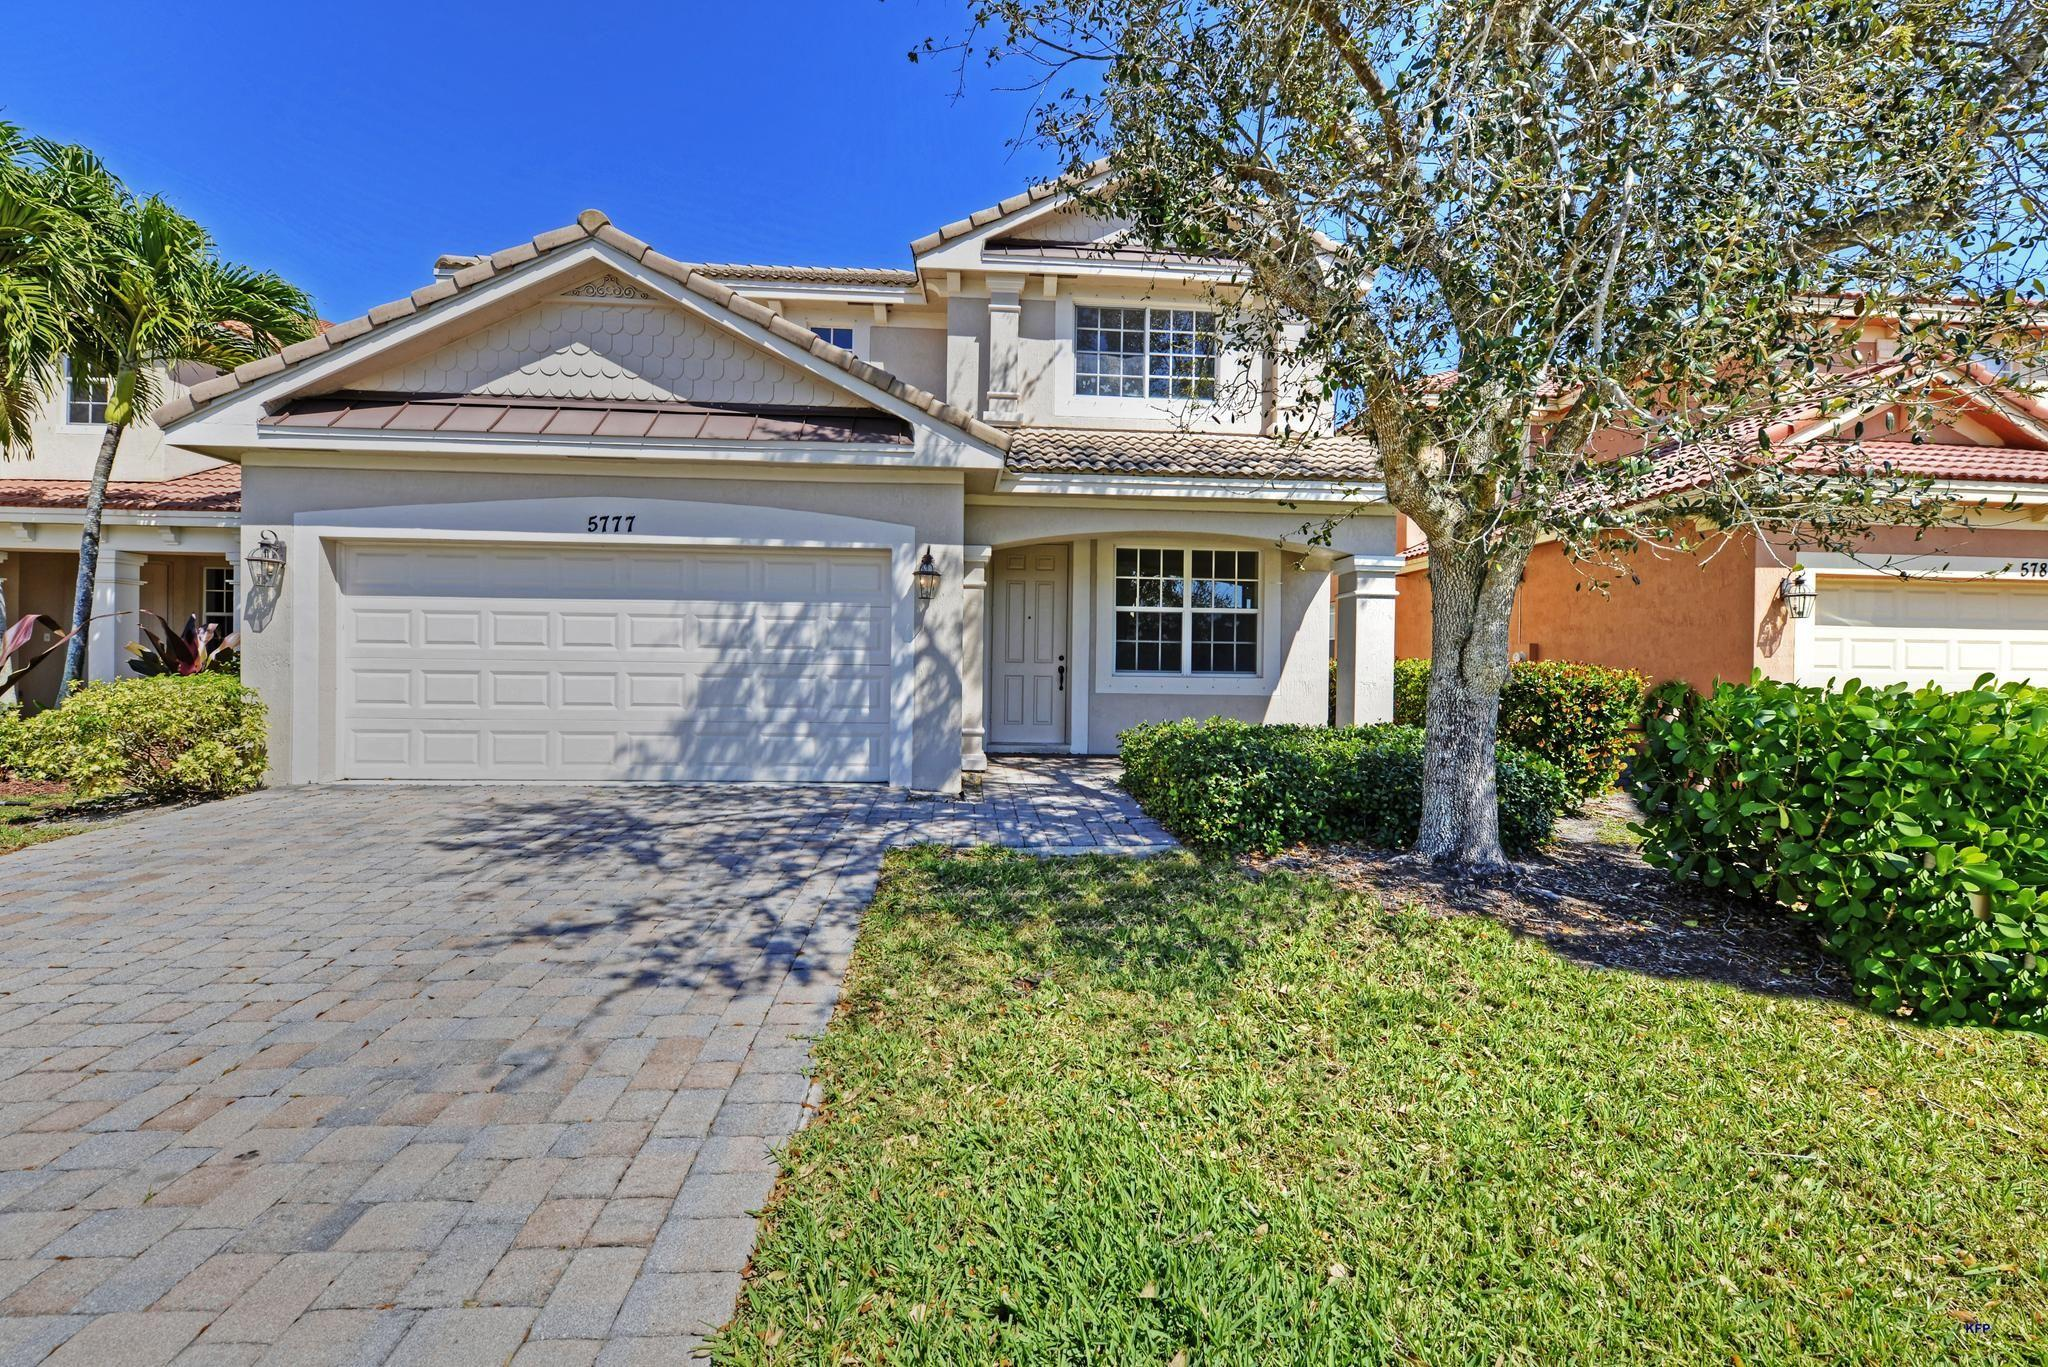 5777 SE Crooked Oak, Hobe Sound, Florida 33455